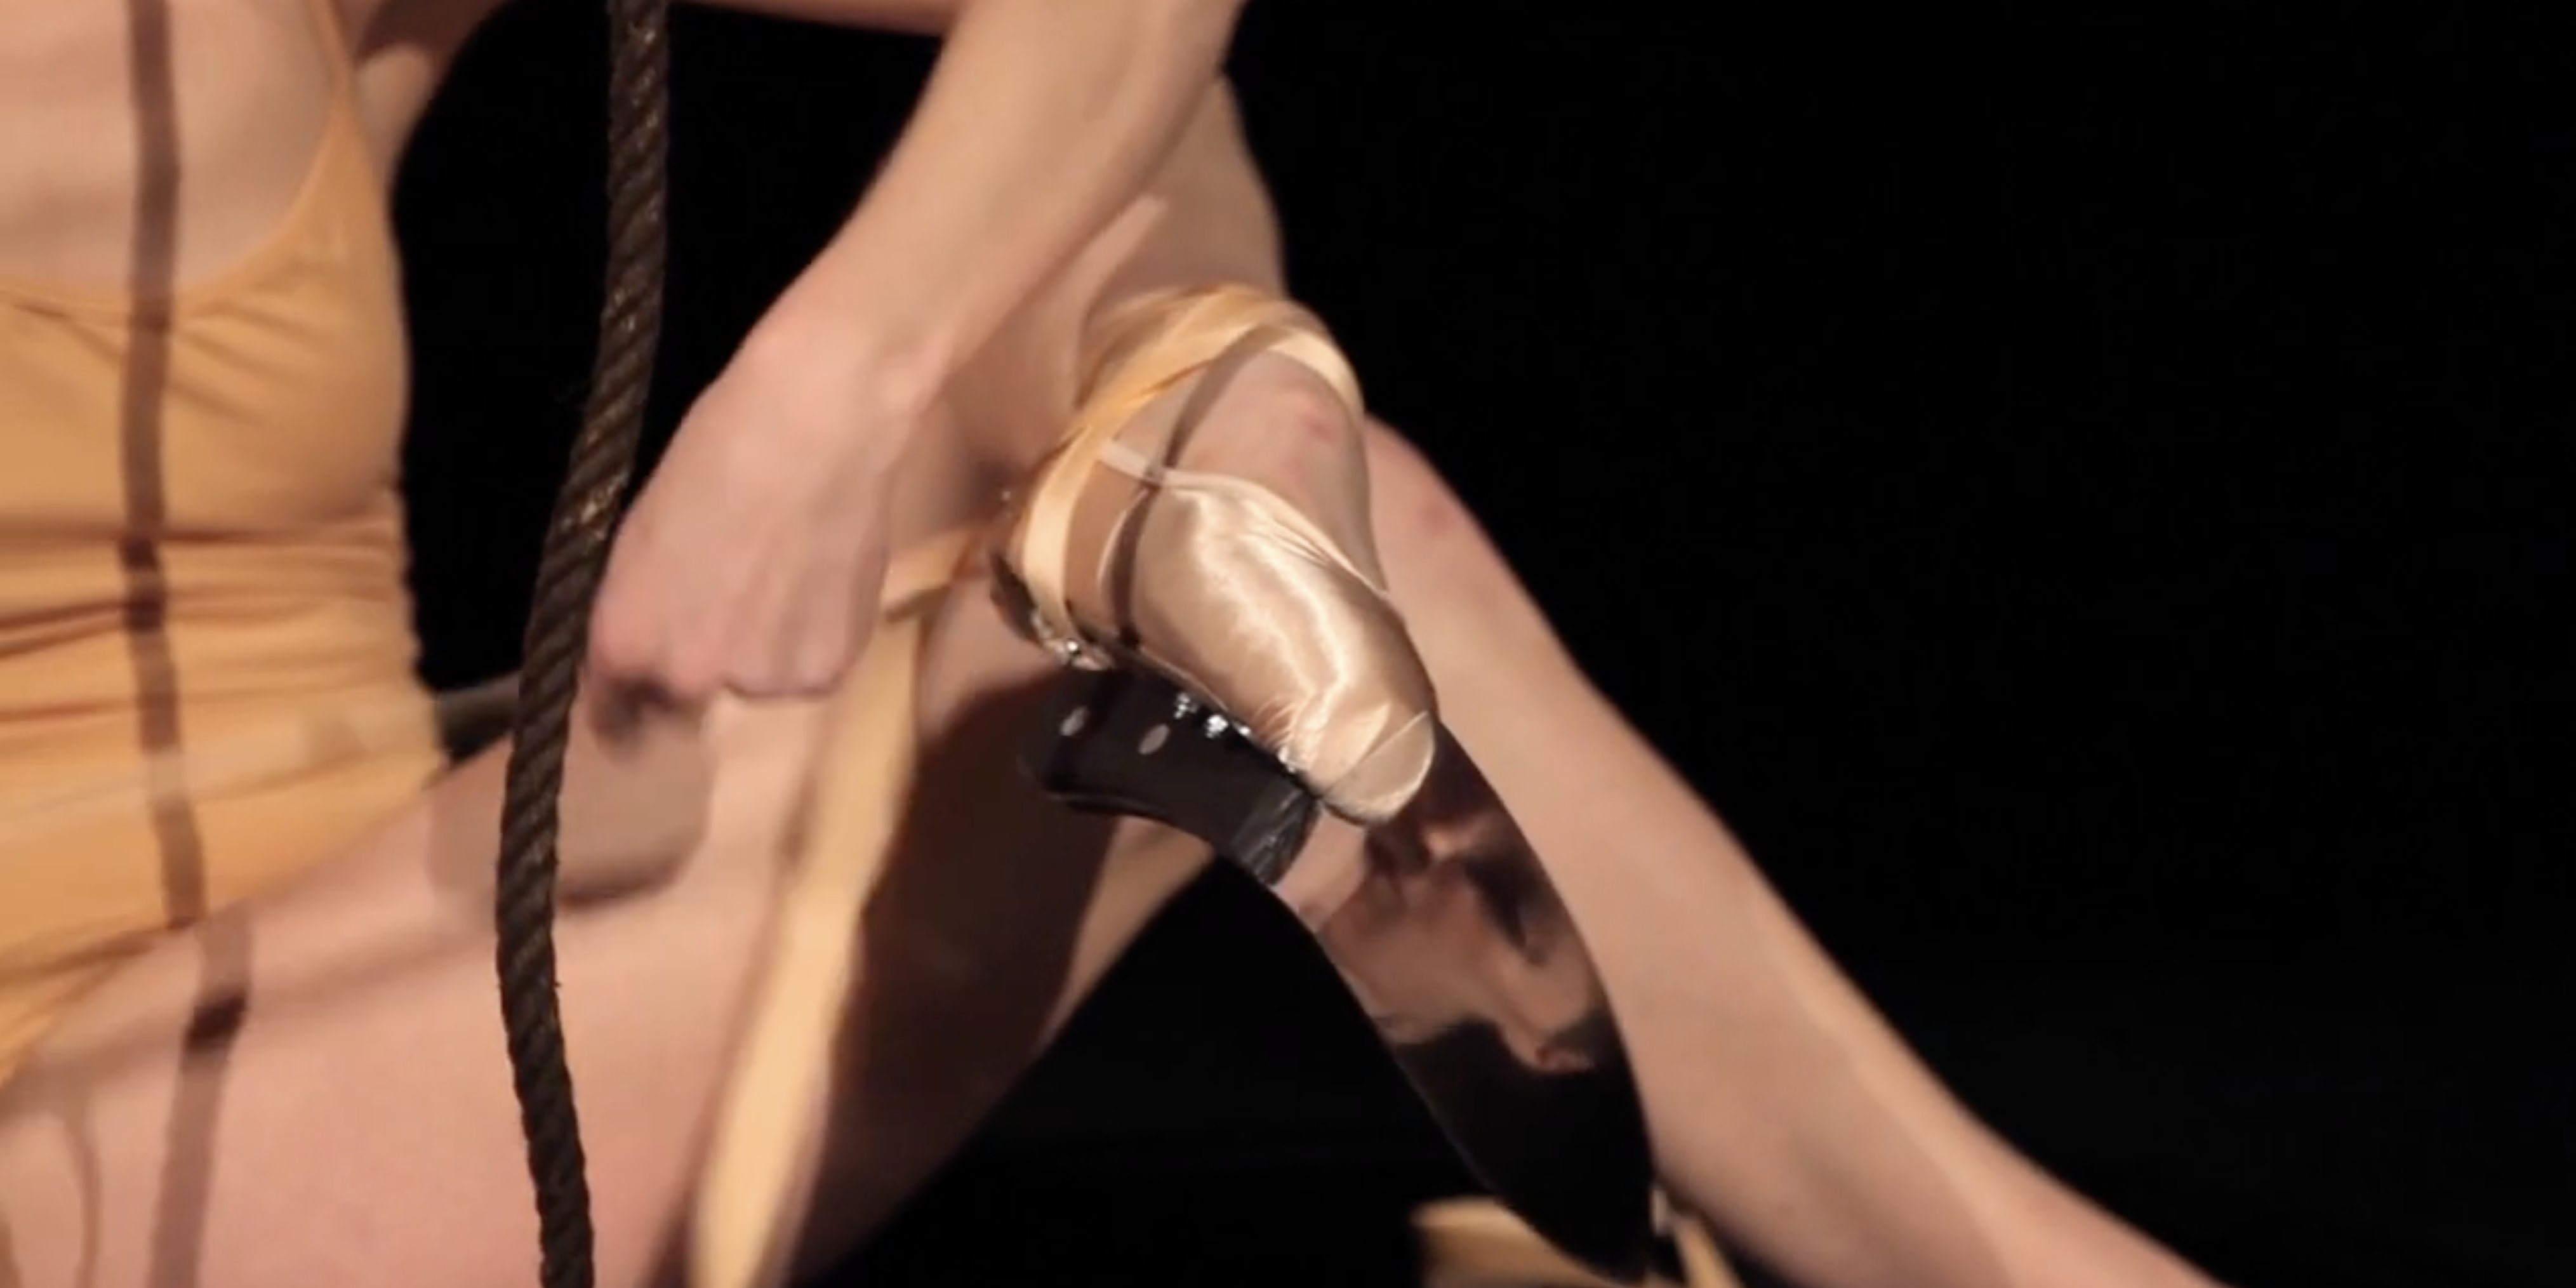 Javier Pérez, En Puntas (detail), 2013, still from the HD video component (color, sound, 9 minutes) of a mixed-media installation additionally comprising pointe shoes and stainless steel knives.